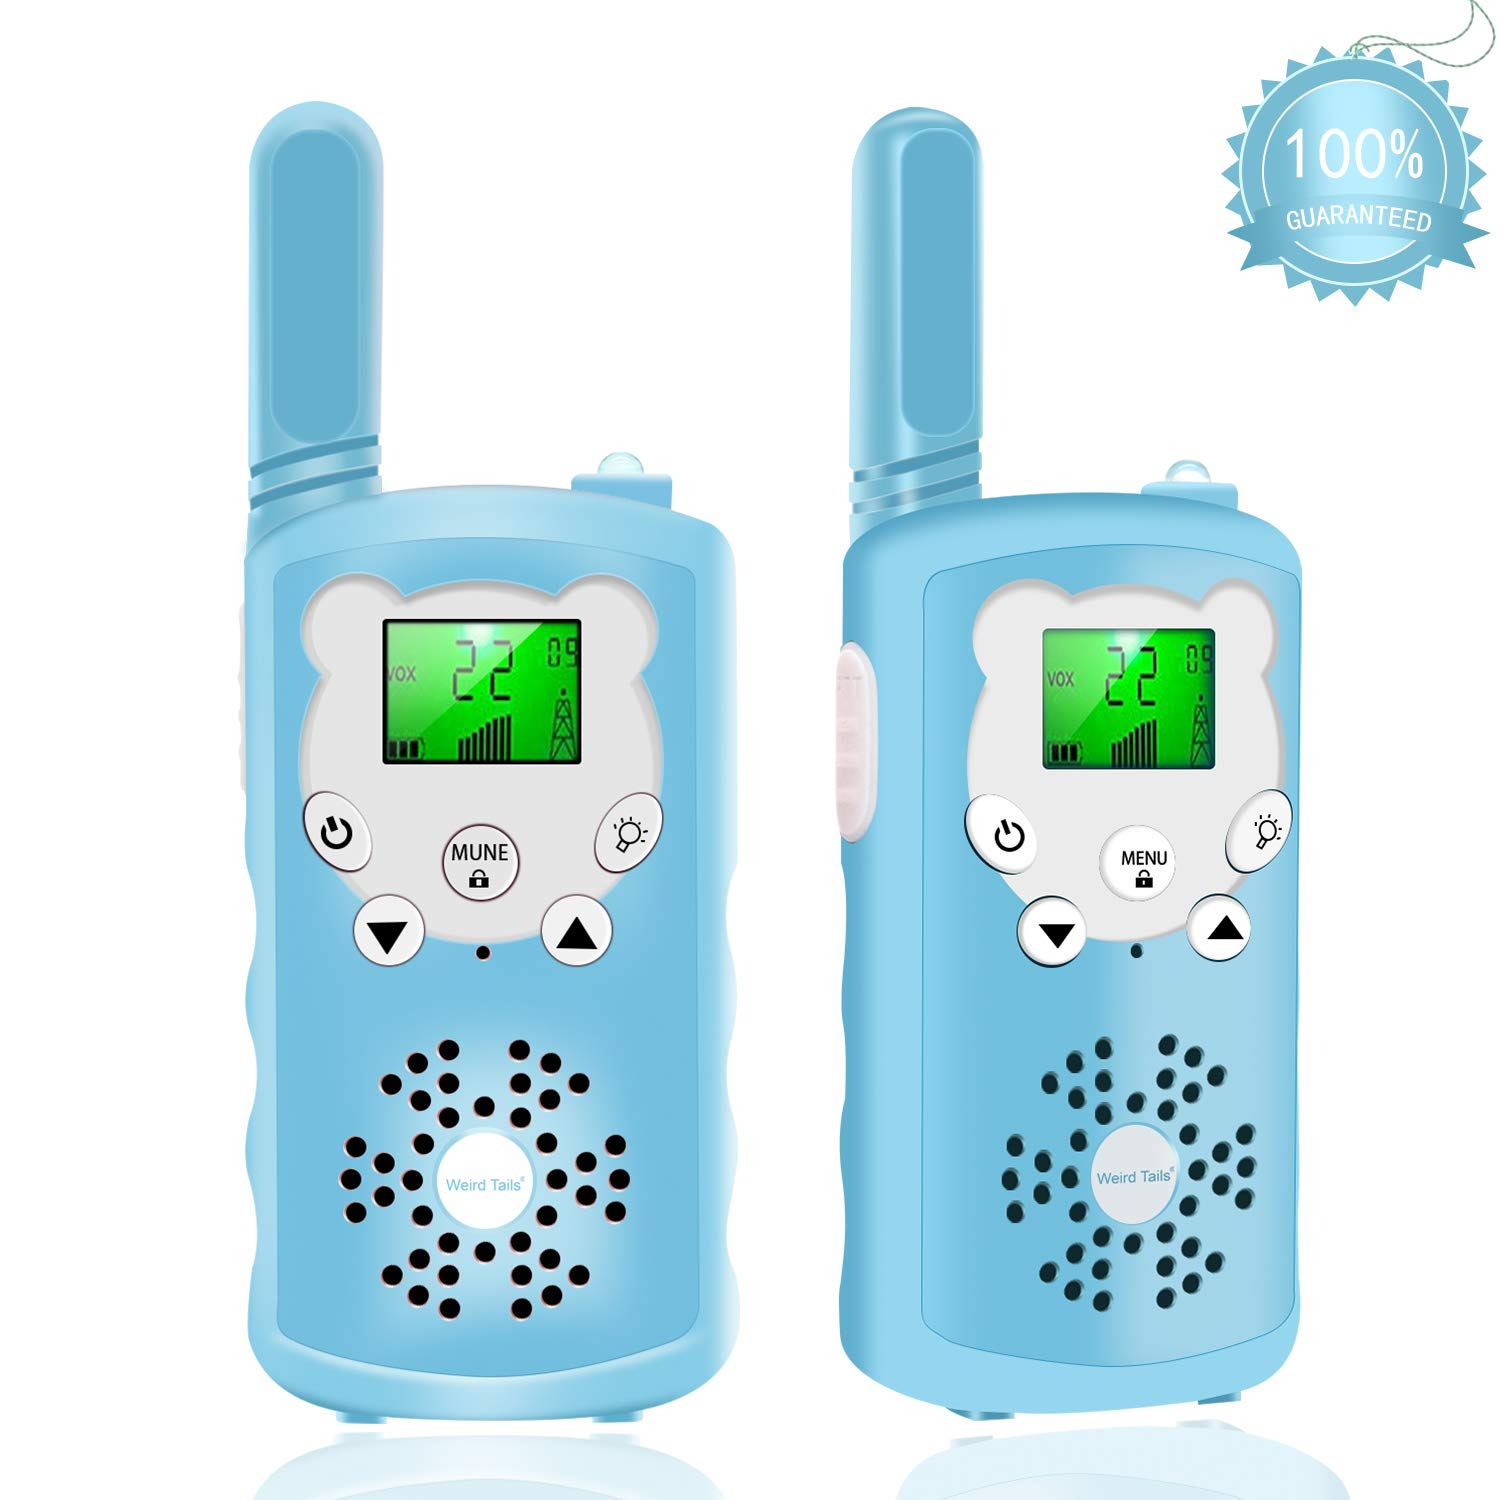 Walkie talkies for Kids - 4-Mile Range Kids walkie talkies with 22 FRS/GMRS Channels, Childrens Toys with BPA-Free ABS eco-Friendly Materials, Great Gift for 3-12 Year Old Boys and Girls,Teen Gift by weird tails (Image #1)